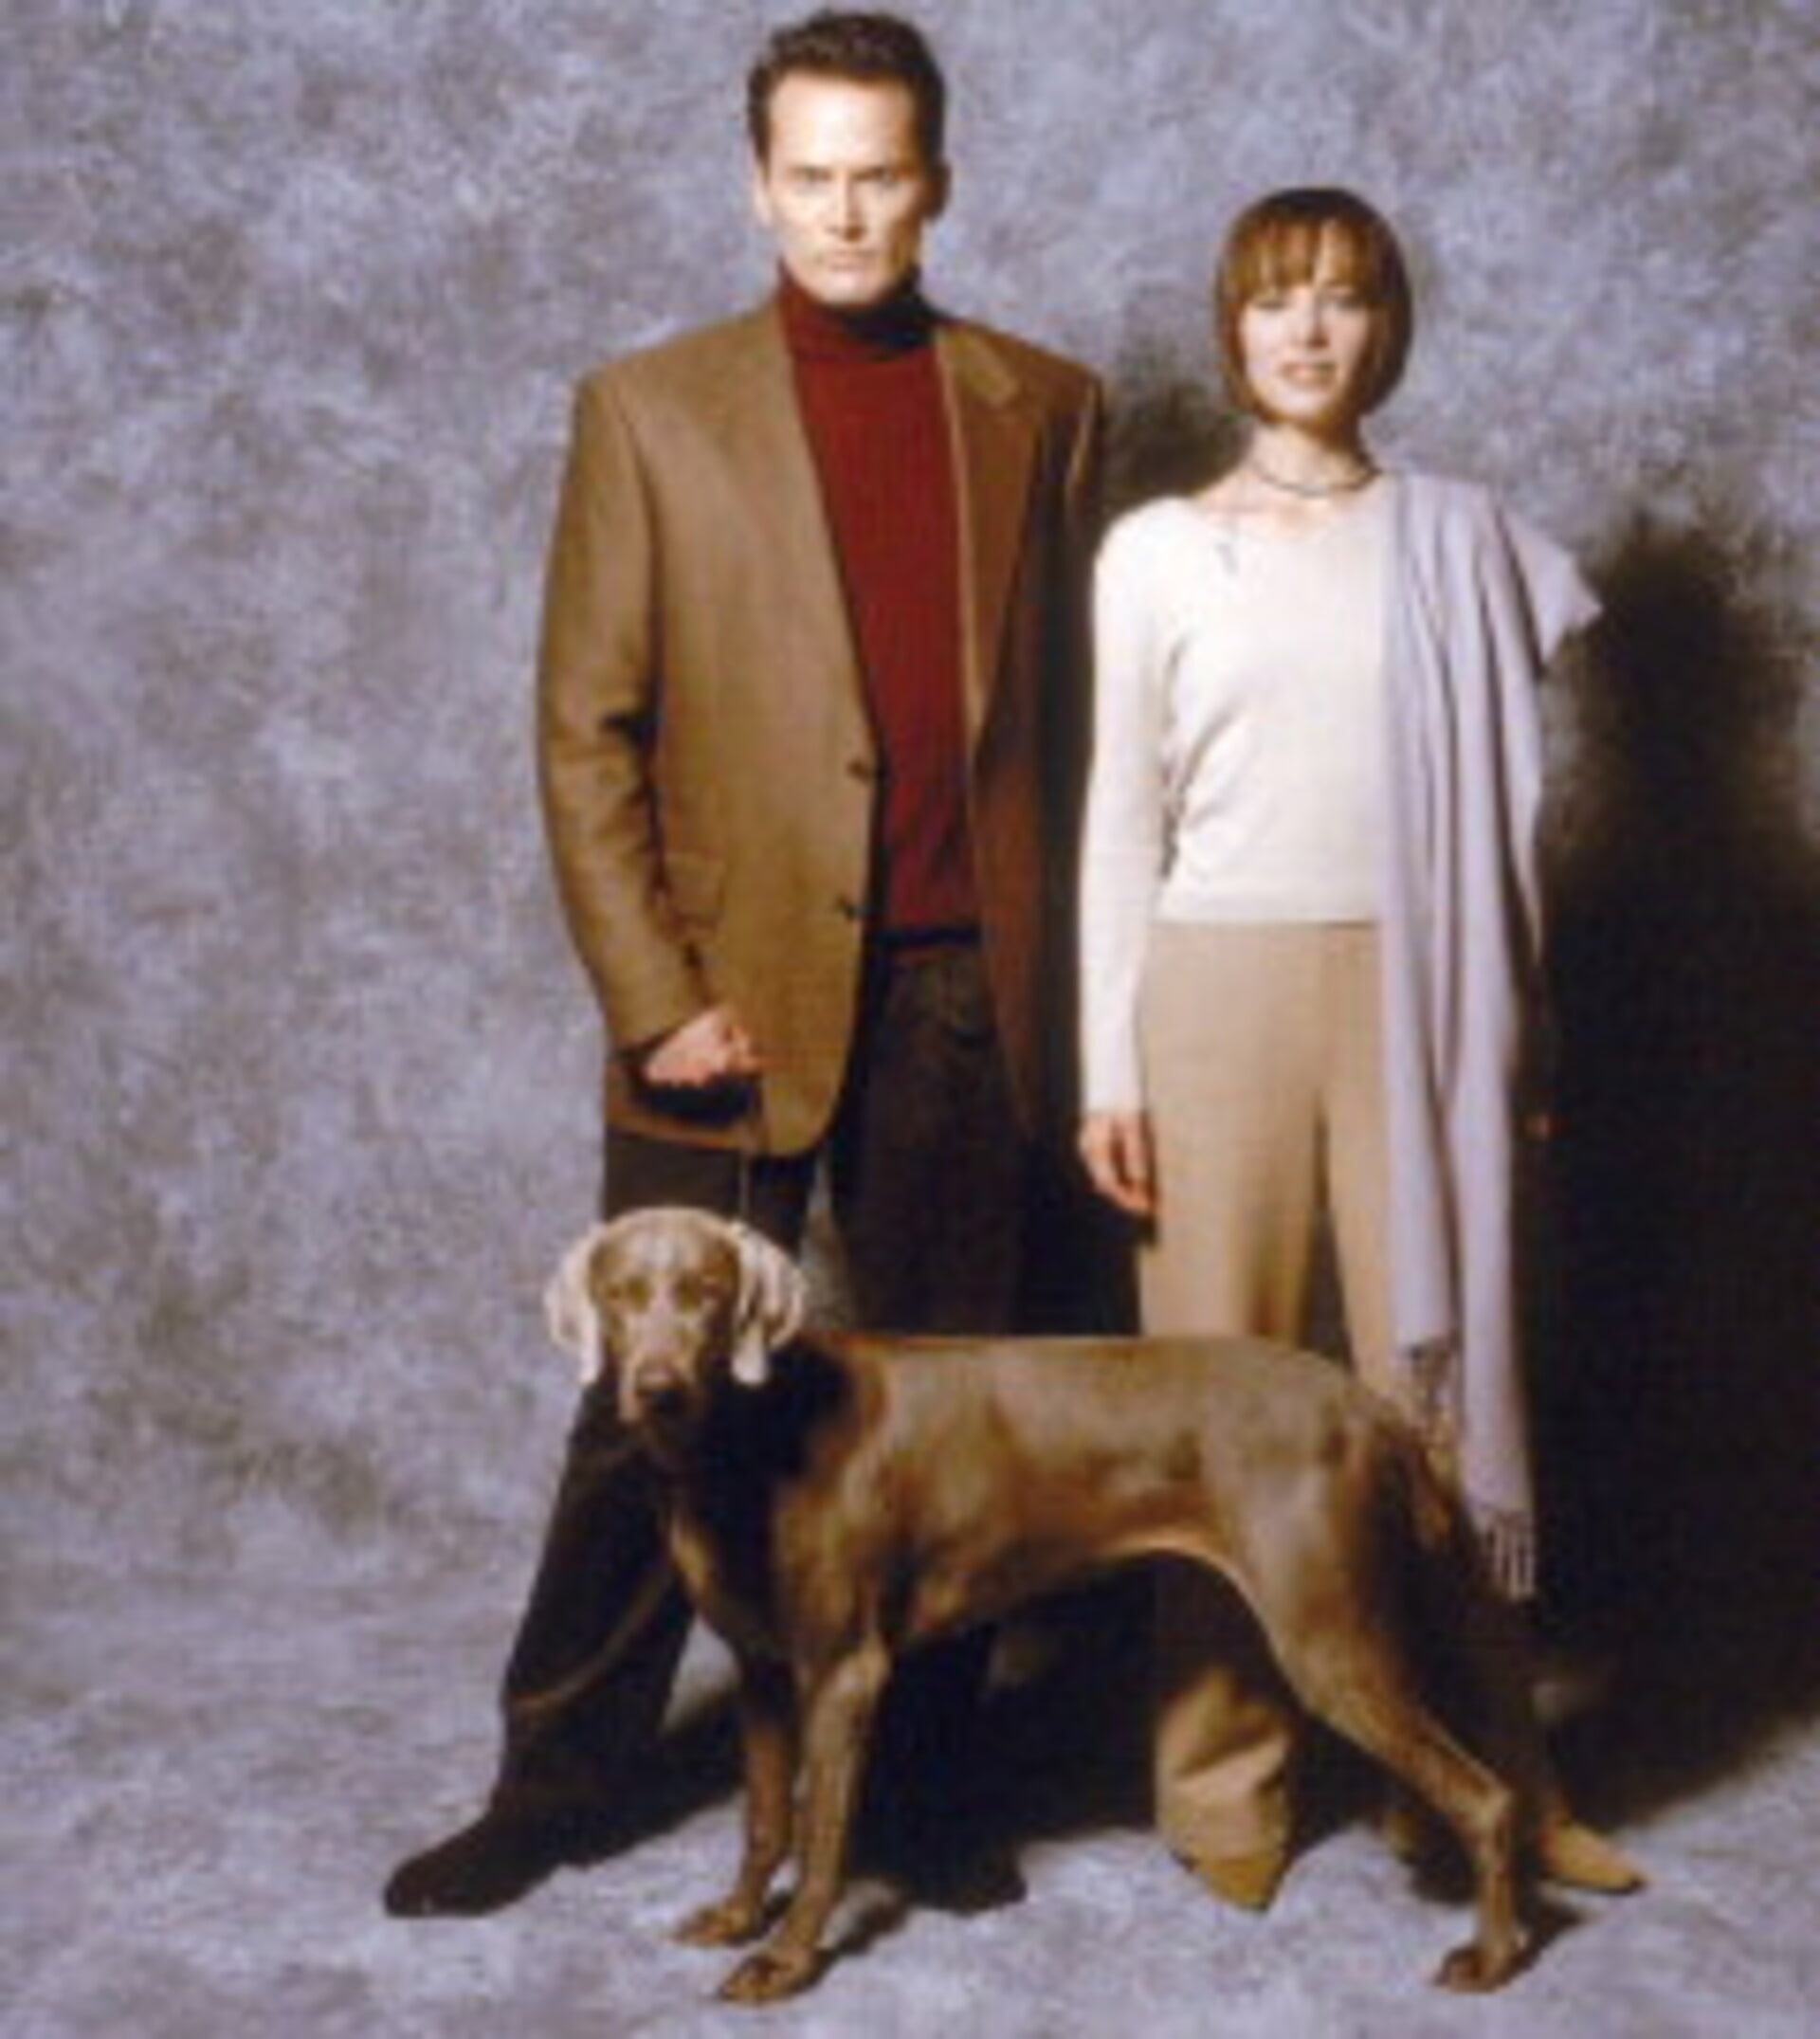 Best in Show - Image 6